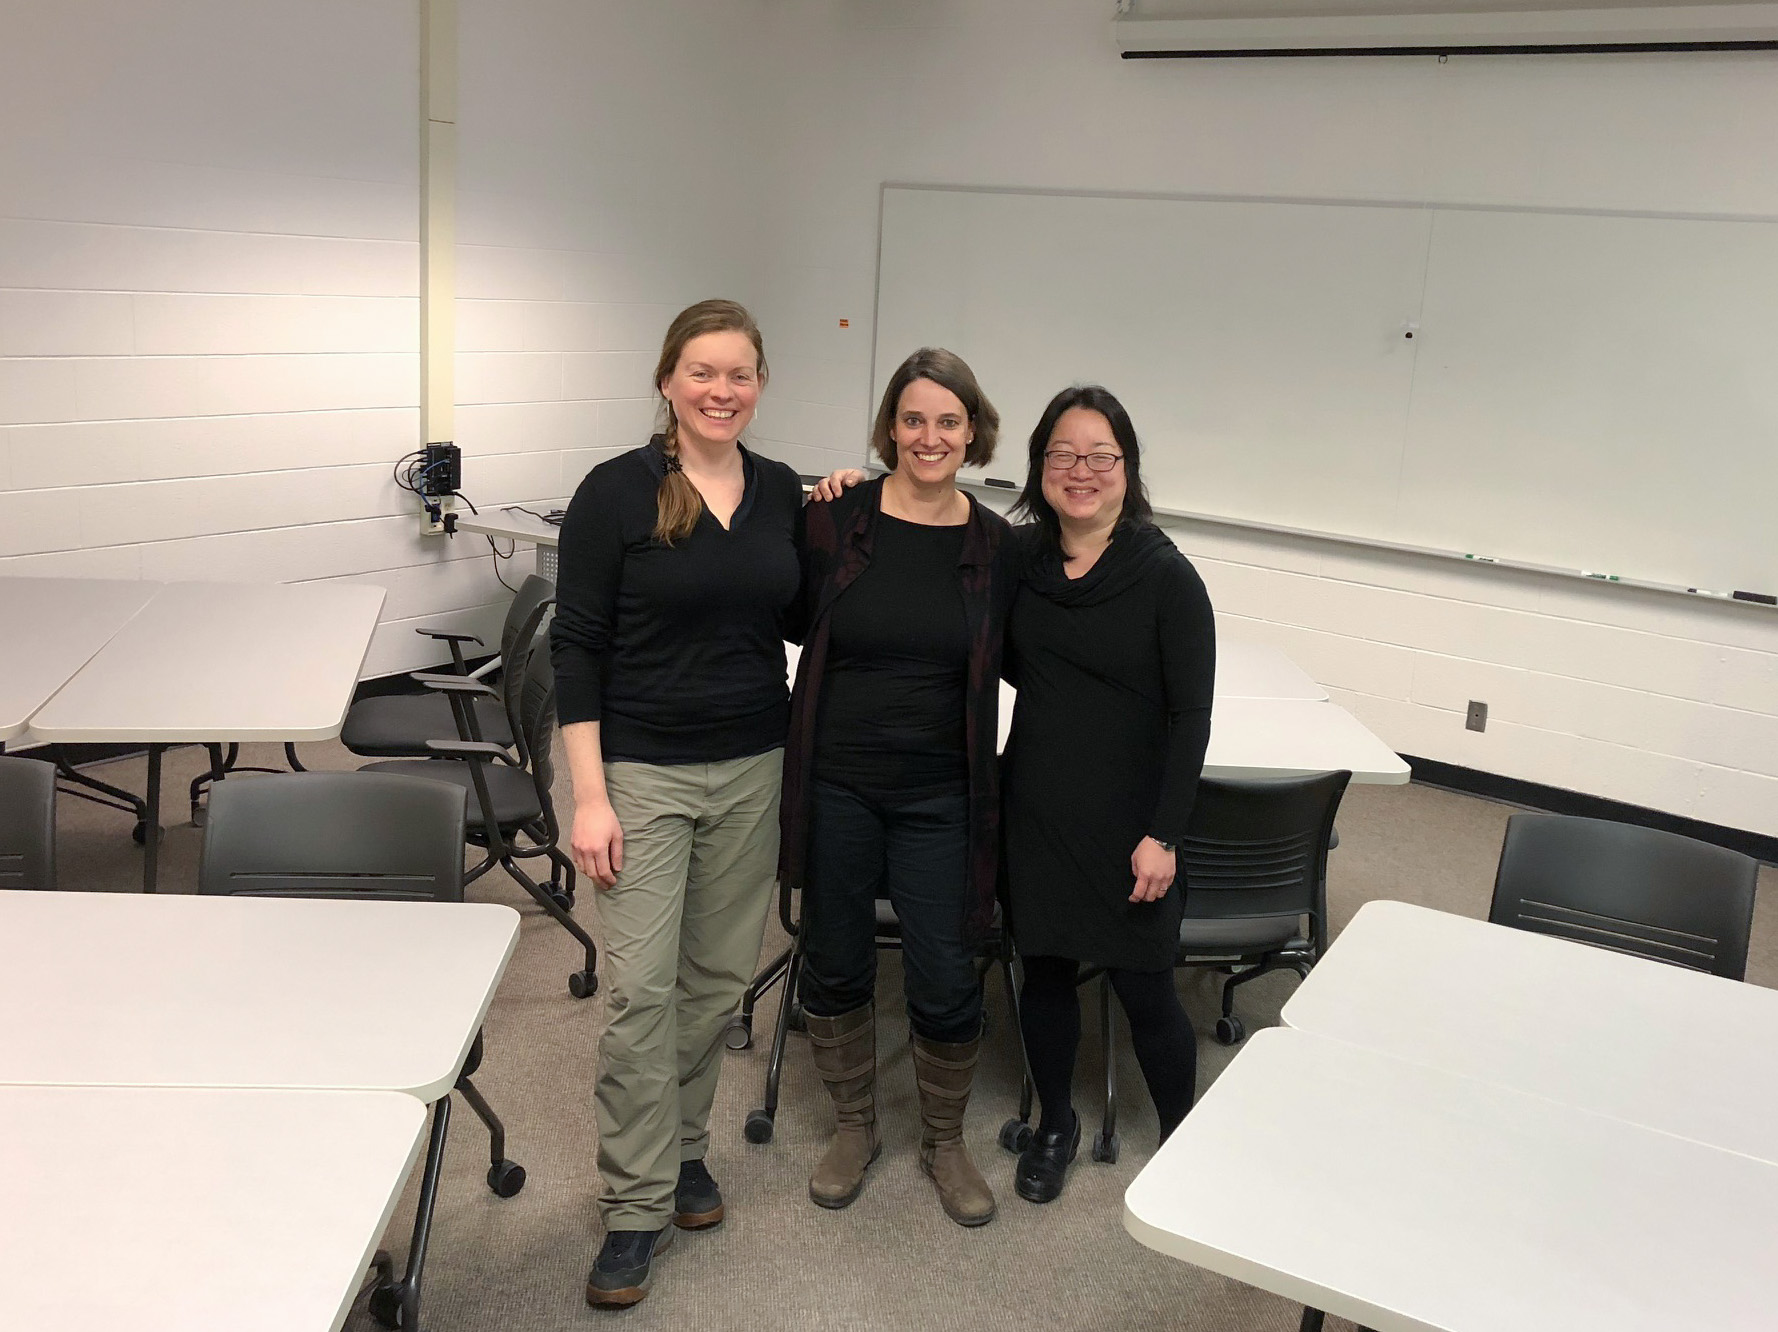 Emma Betz, Grit Liebscher and Adrienne Lo standing in a classroom